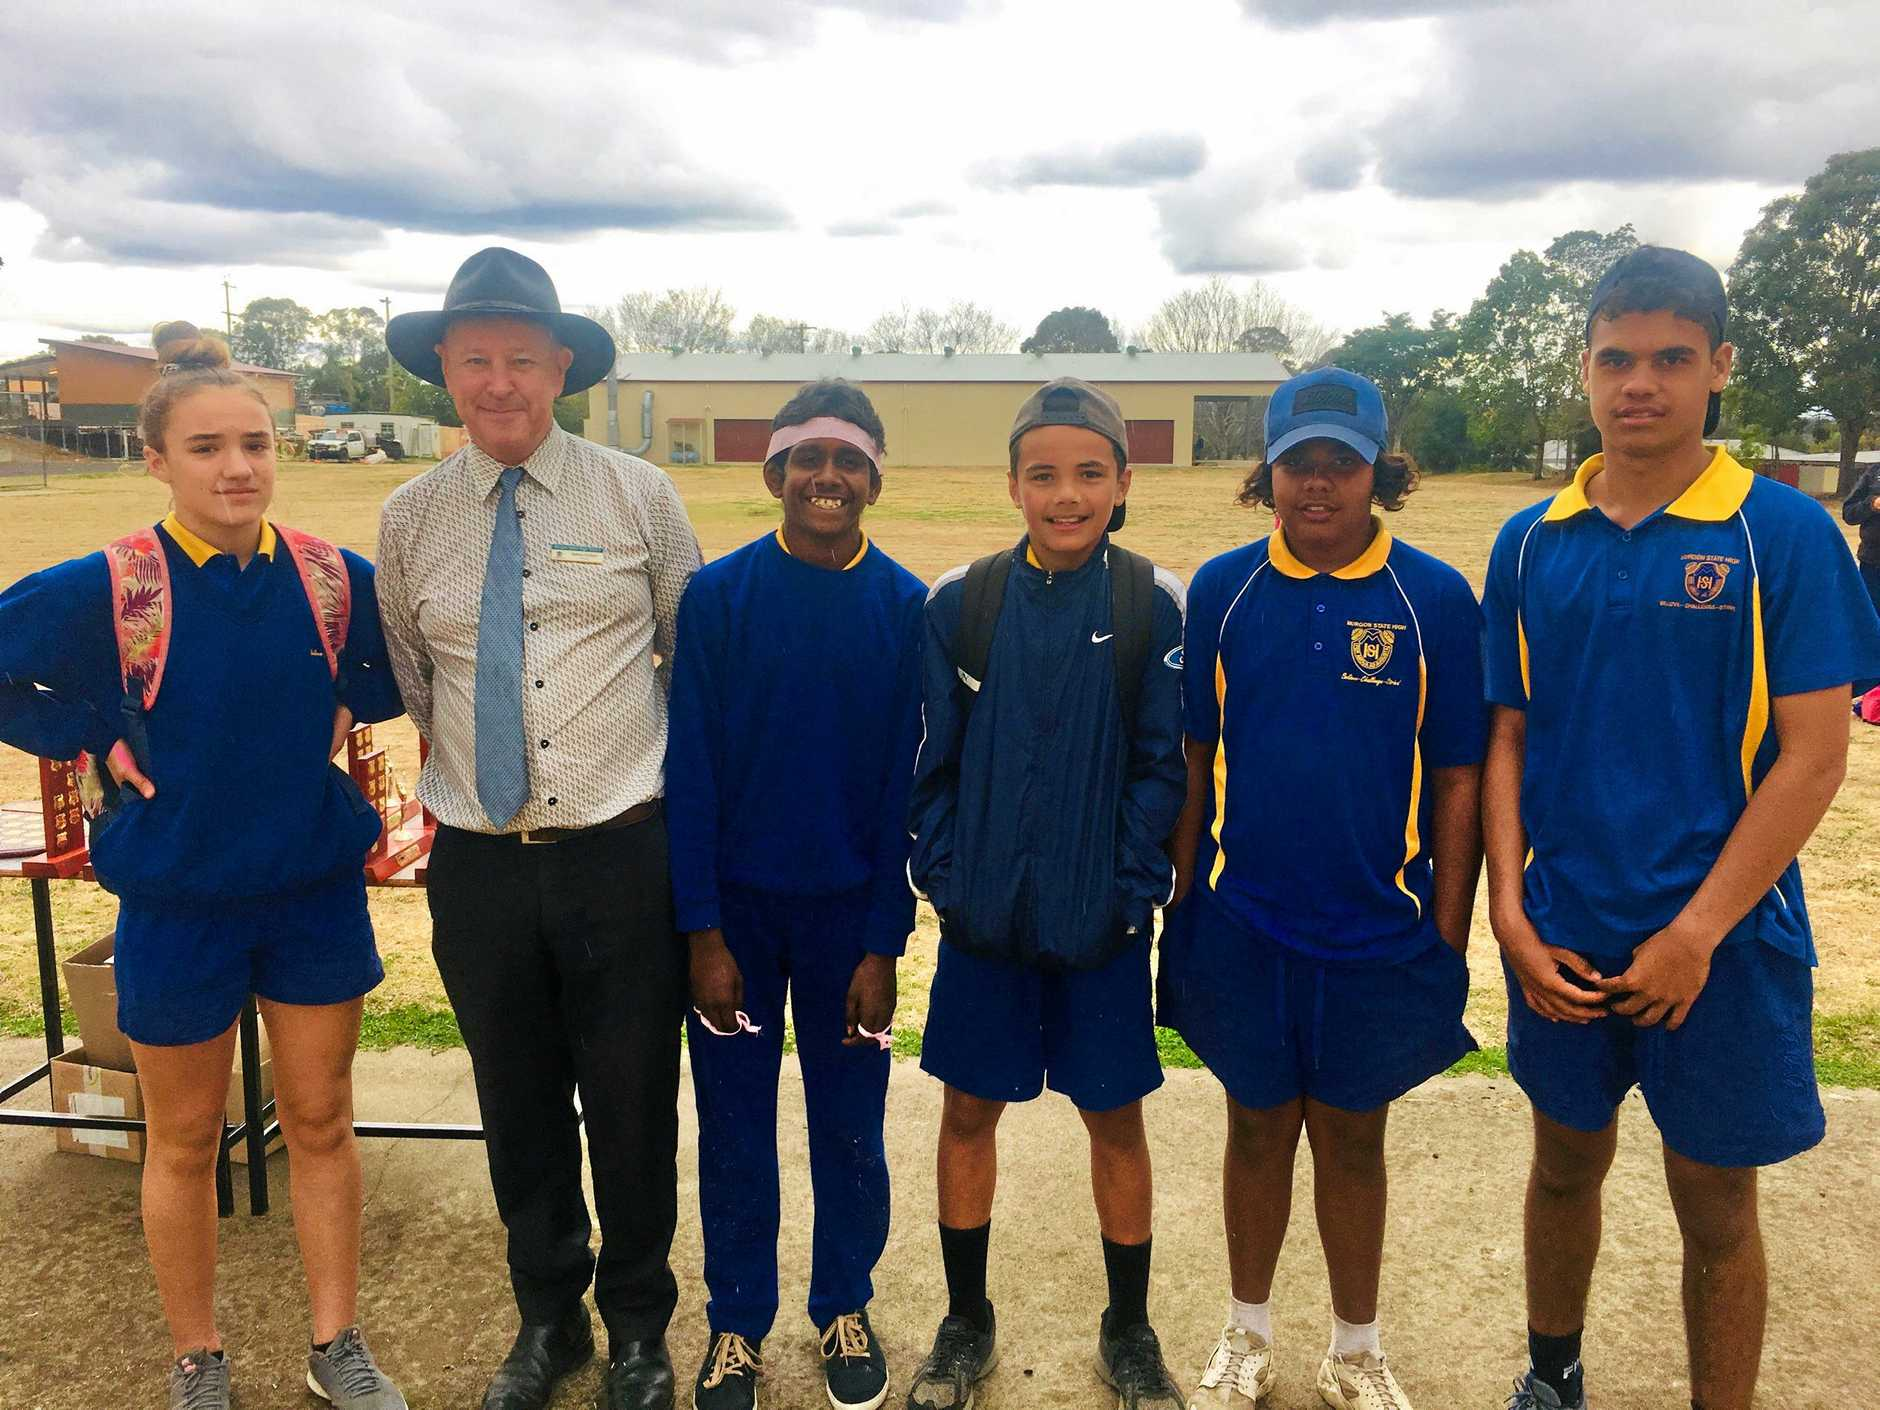 Murgon State High School principal Simon Cotton amongst the record breakers from the athletics carnival, Bella Borninkhof, Patrick Collins, Ziggy Pidgeon, Jack Speedy and Dominic Sandow.